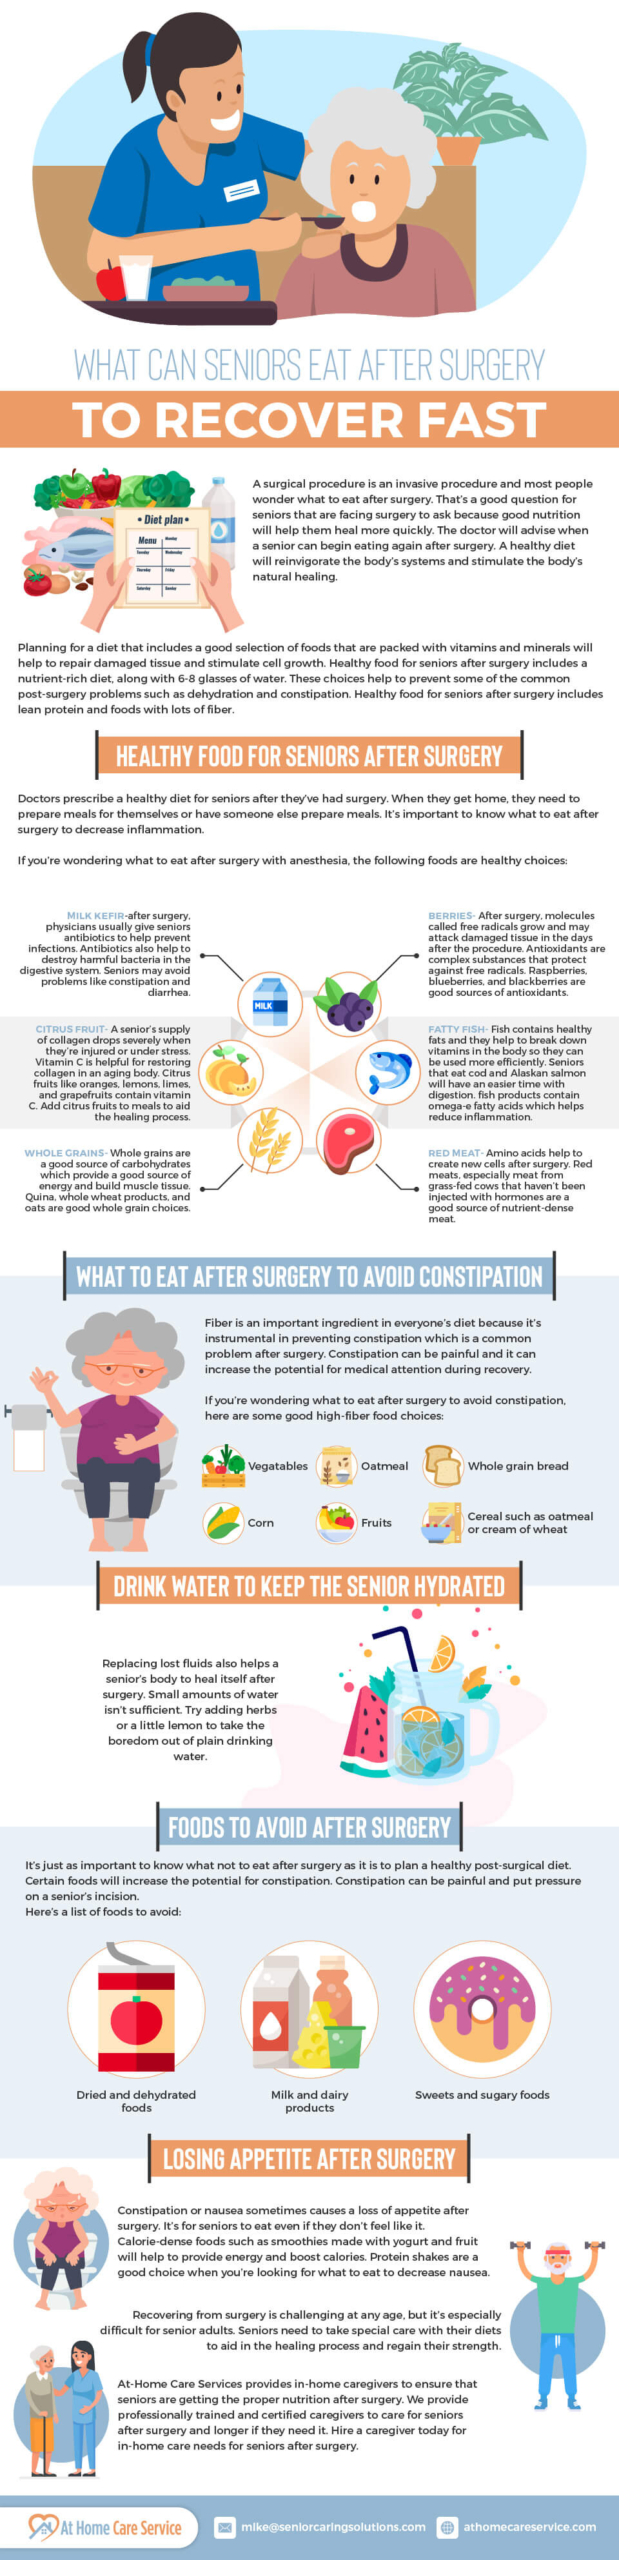 what seniors can eat after a surgery - Infographic